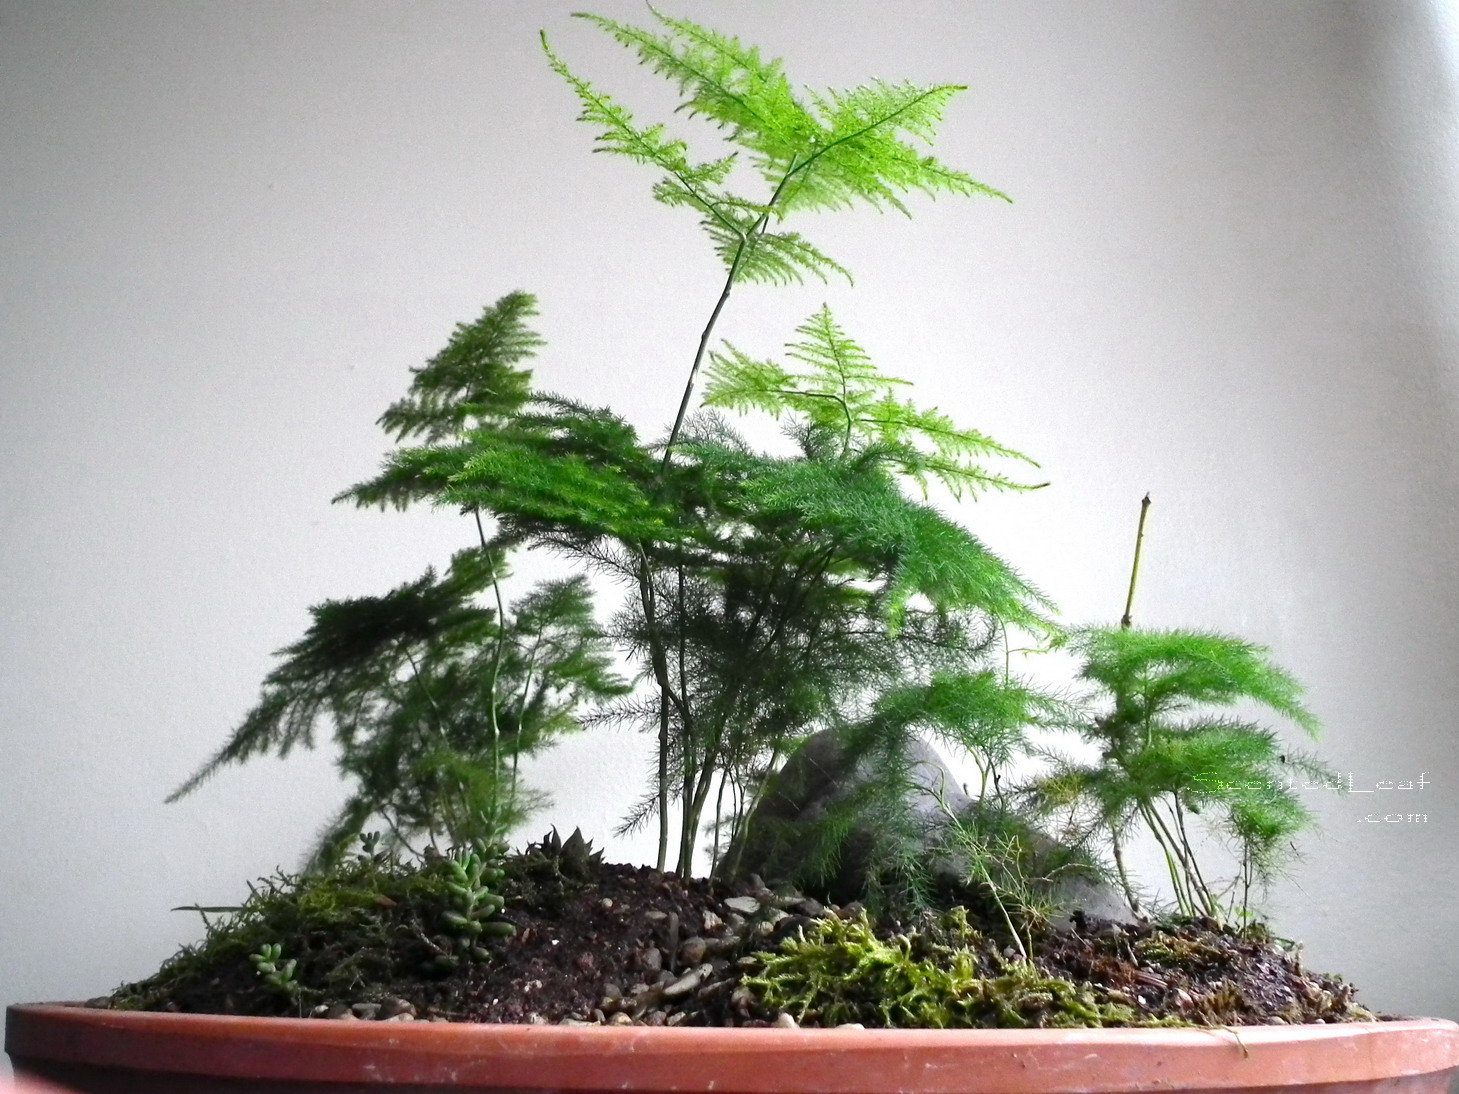 Saikei / miniature garden with seven asparagus fern plants and mountain stone & Scented Leaf: Saikei with Asparagus Fern